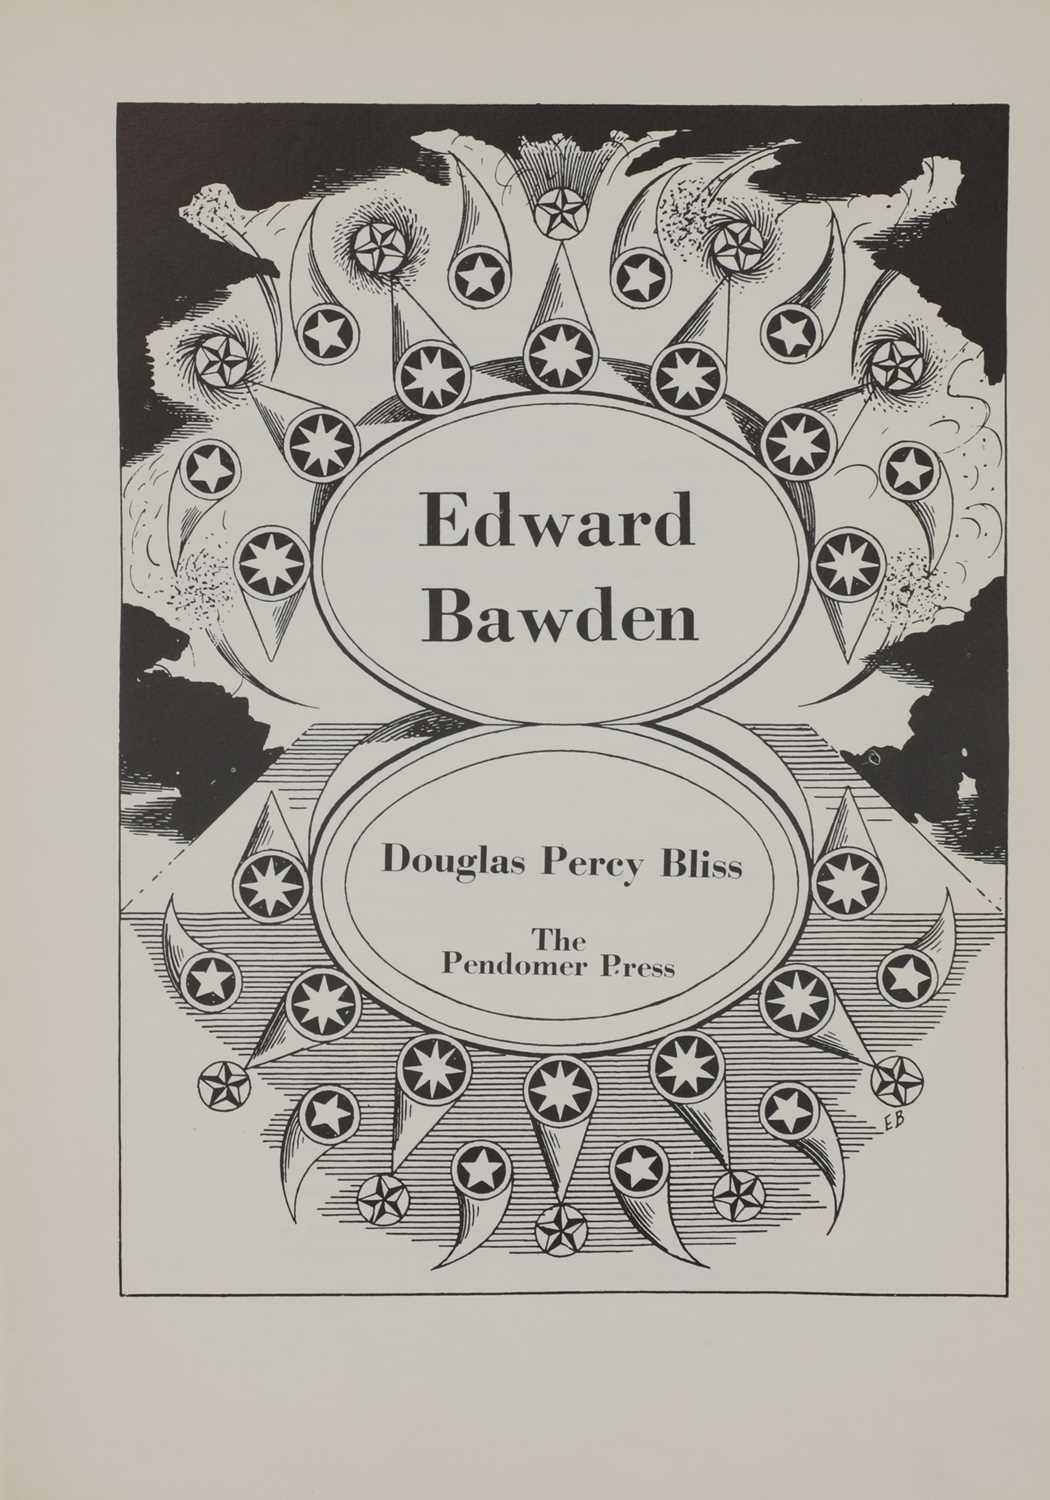 'Edward Bawden' by Douglas Percy Bliss, - Image 3 of 5